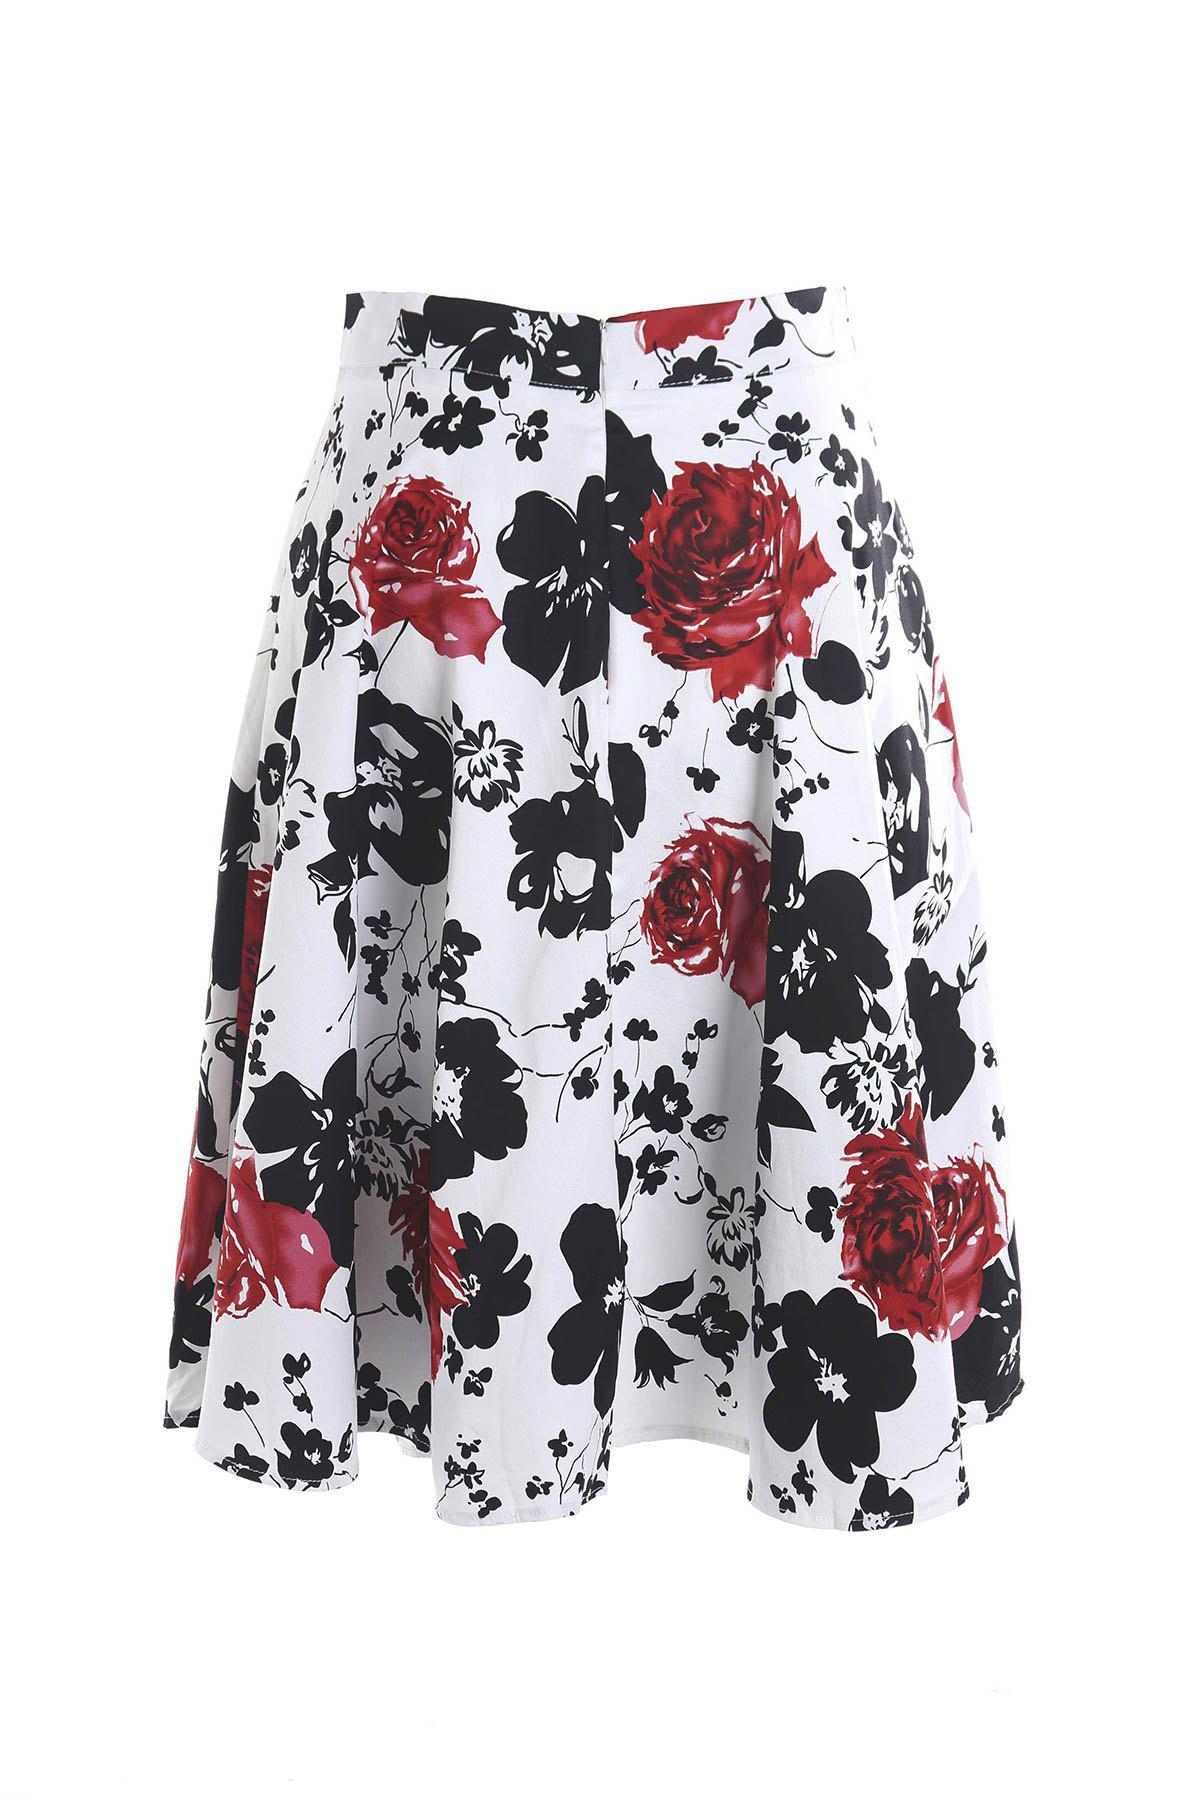 Vintage Style High-Waisted A-Line Floral Print Women's Skirt - RED/WHITE S